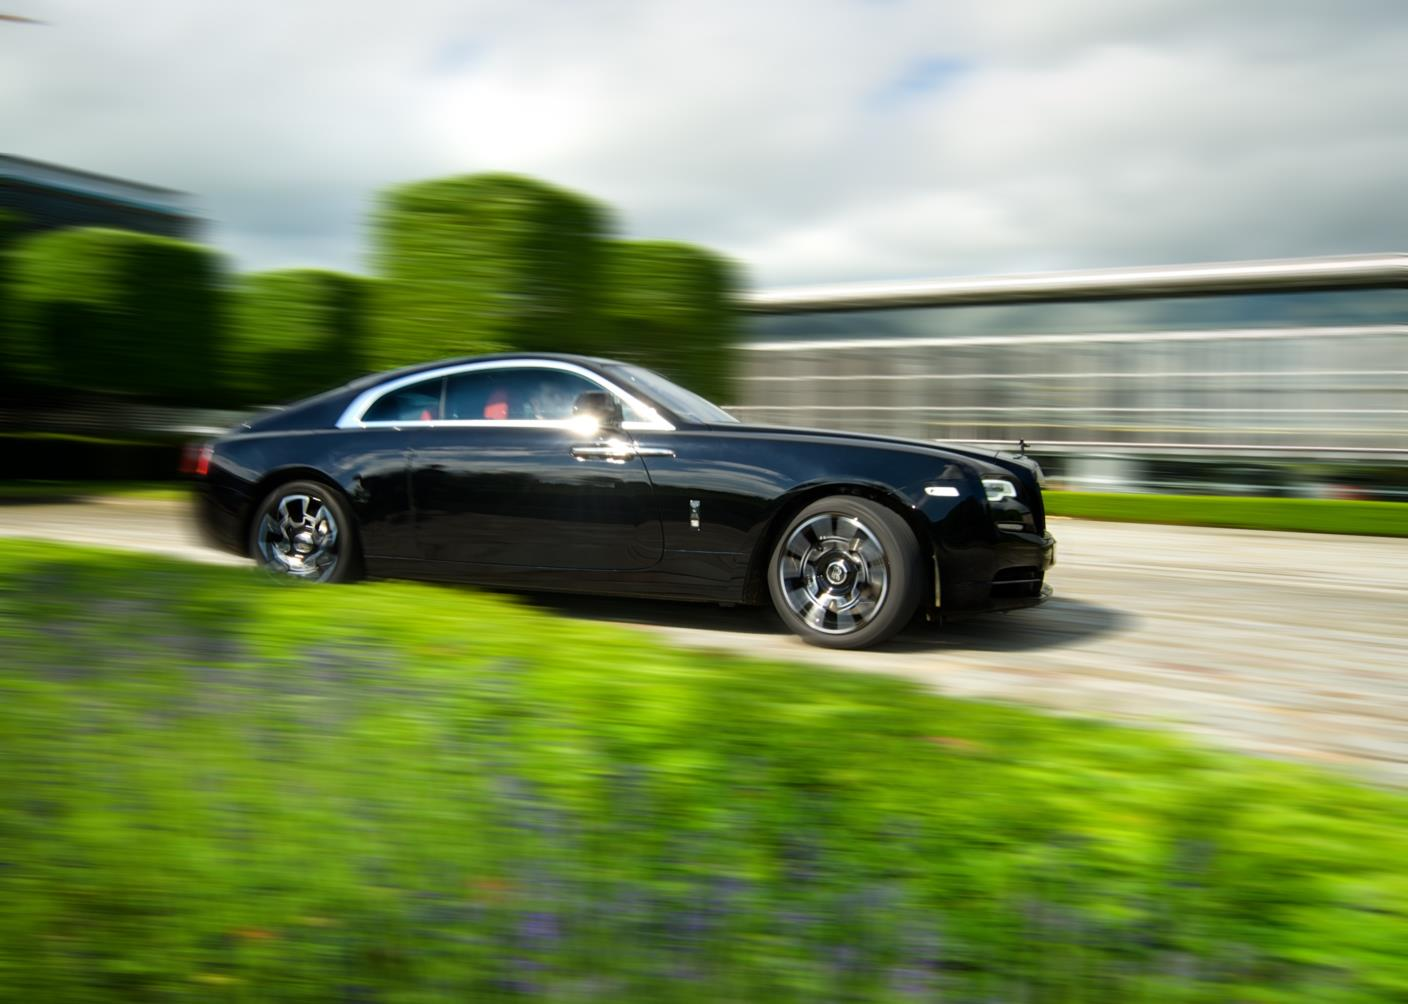 Rolls-Royce celebrates 2016 Goodwood Festival of Speed with a dark and edgy presence (2)